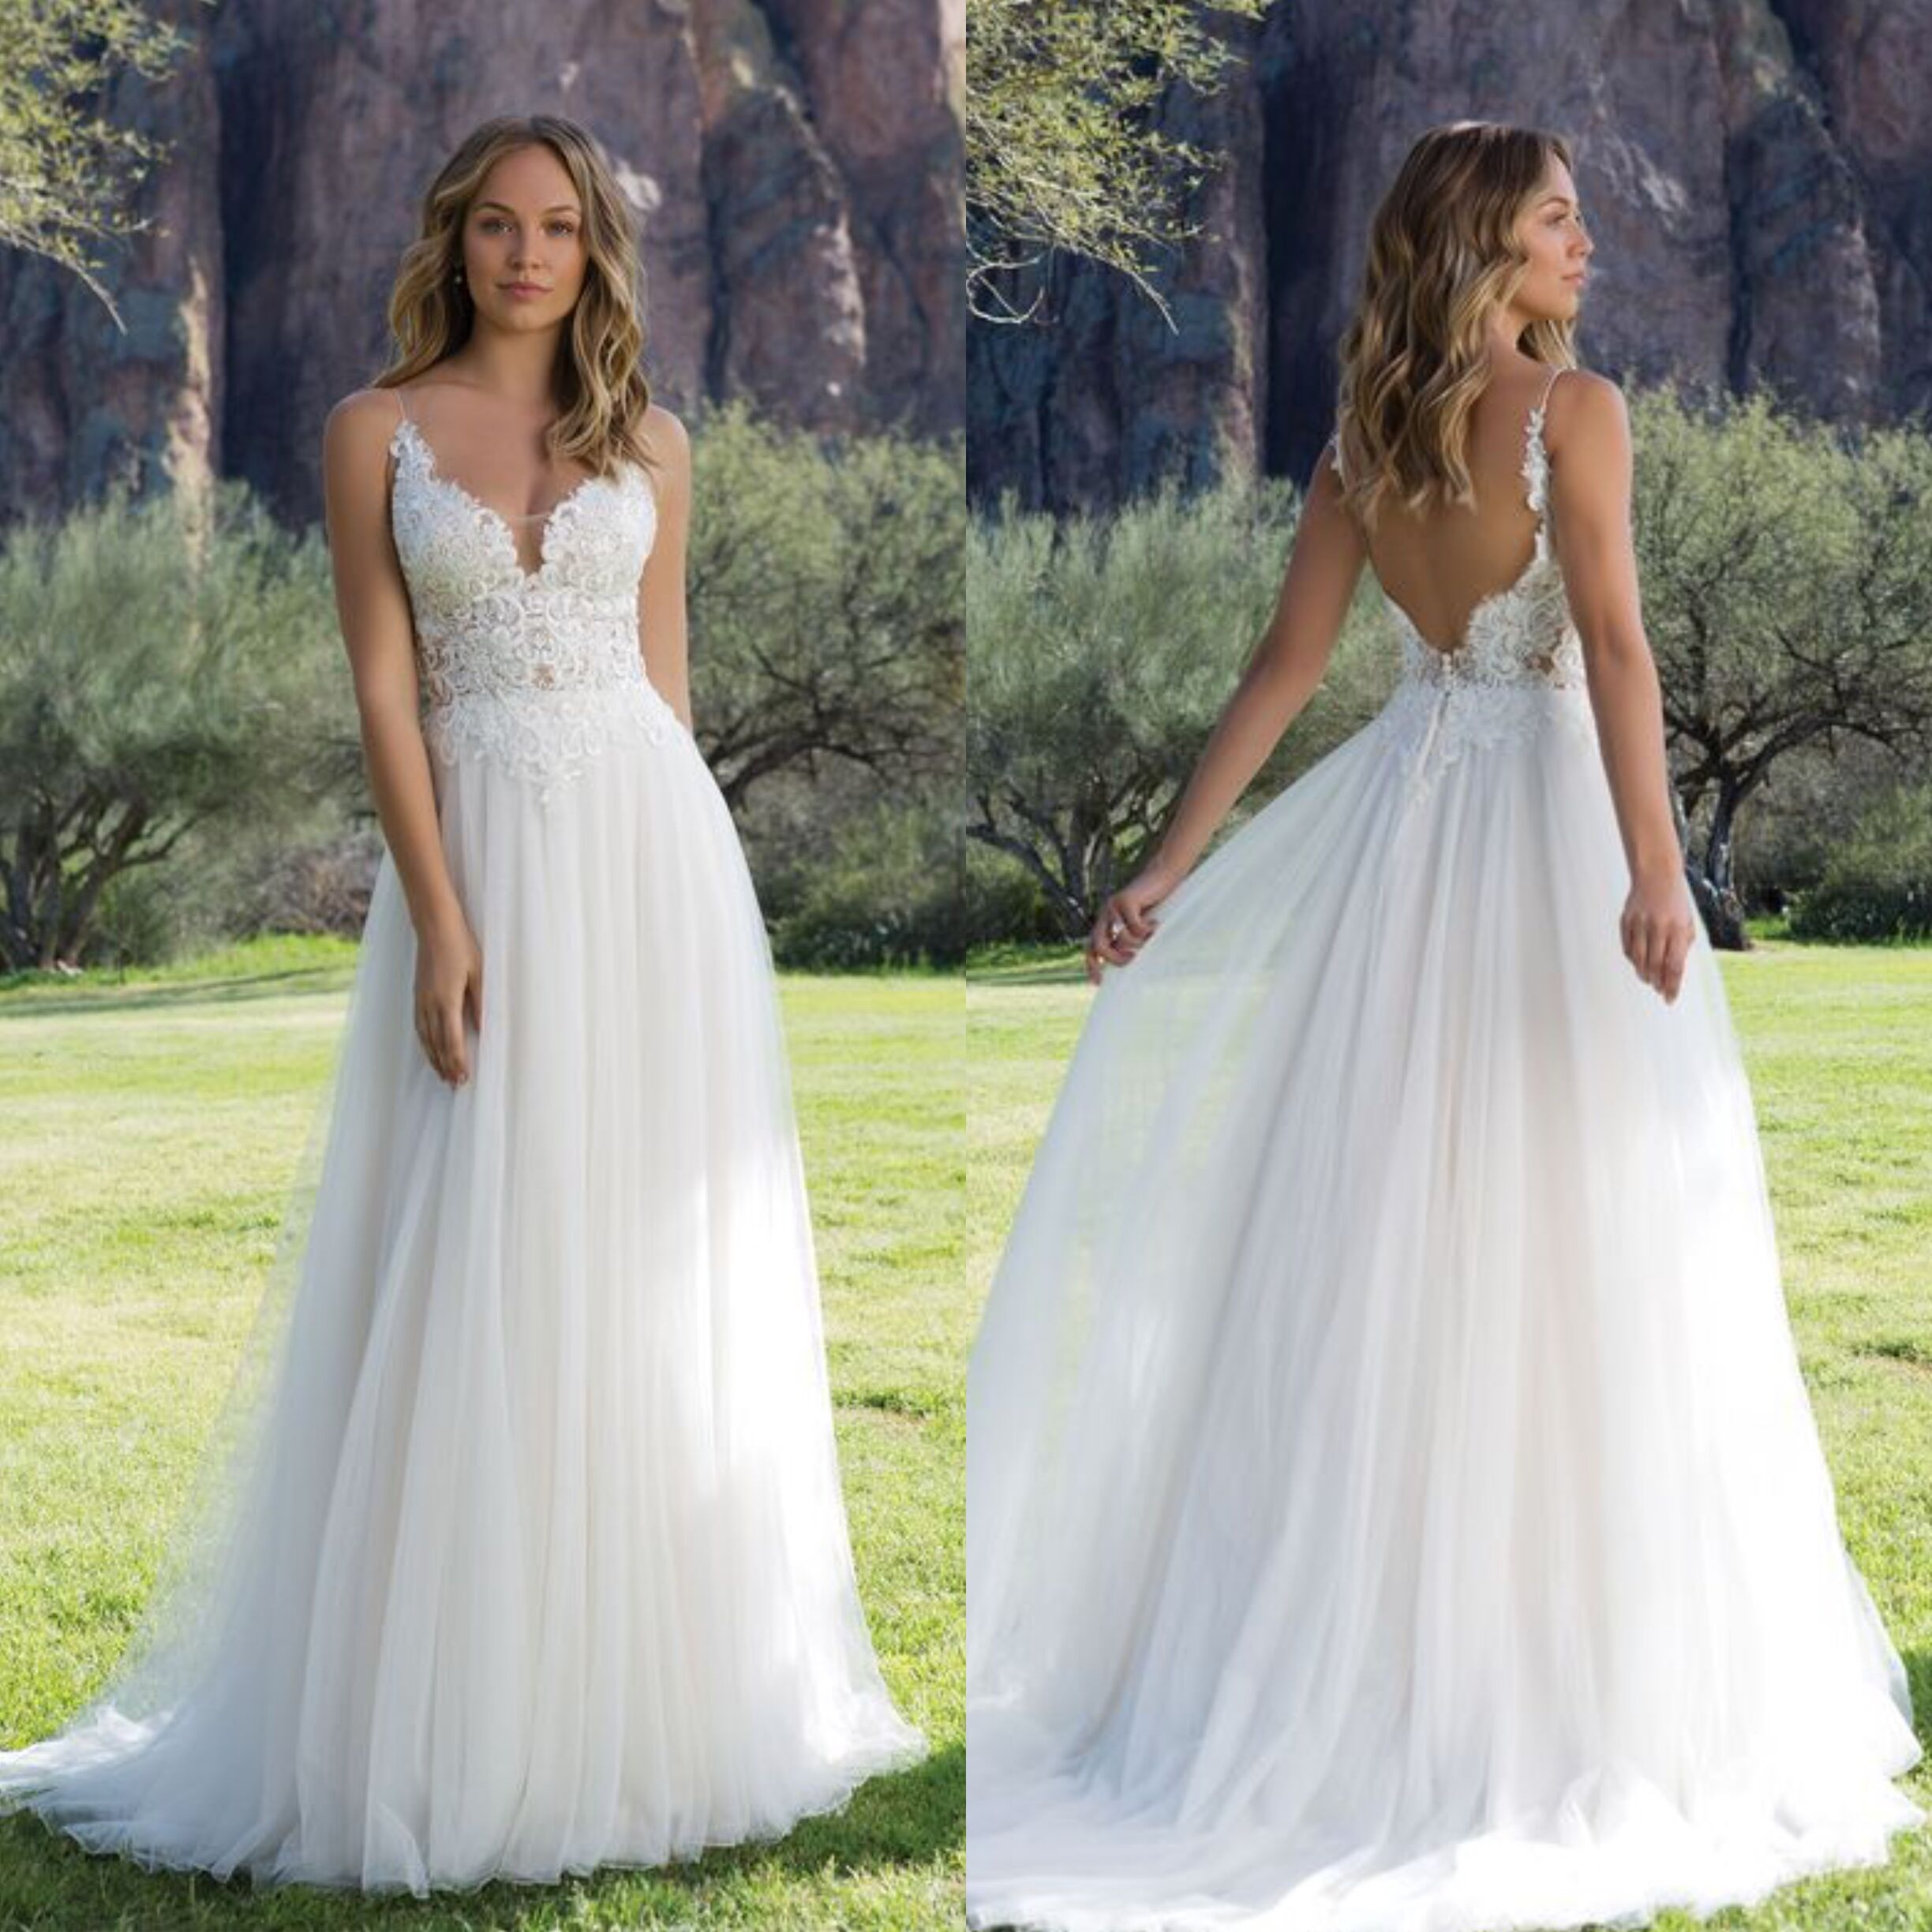 Slim Spaghetti Strap A-Line Gown With Illusion Bodice Sexy Backless Floor Length Beach Bridal Gowns